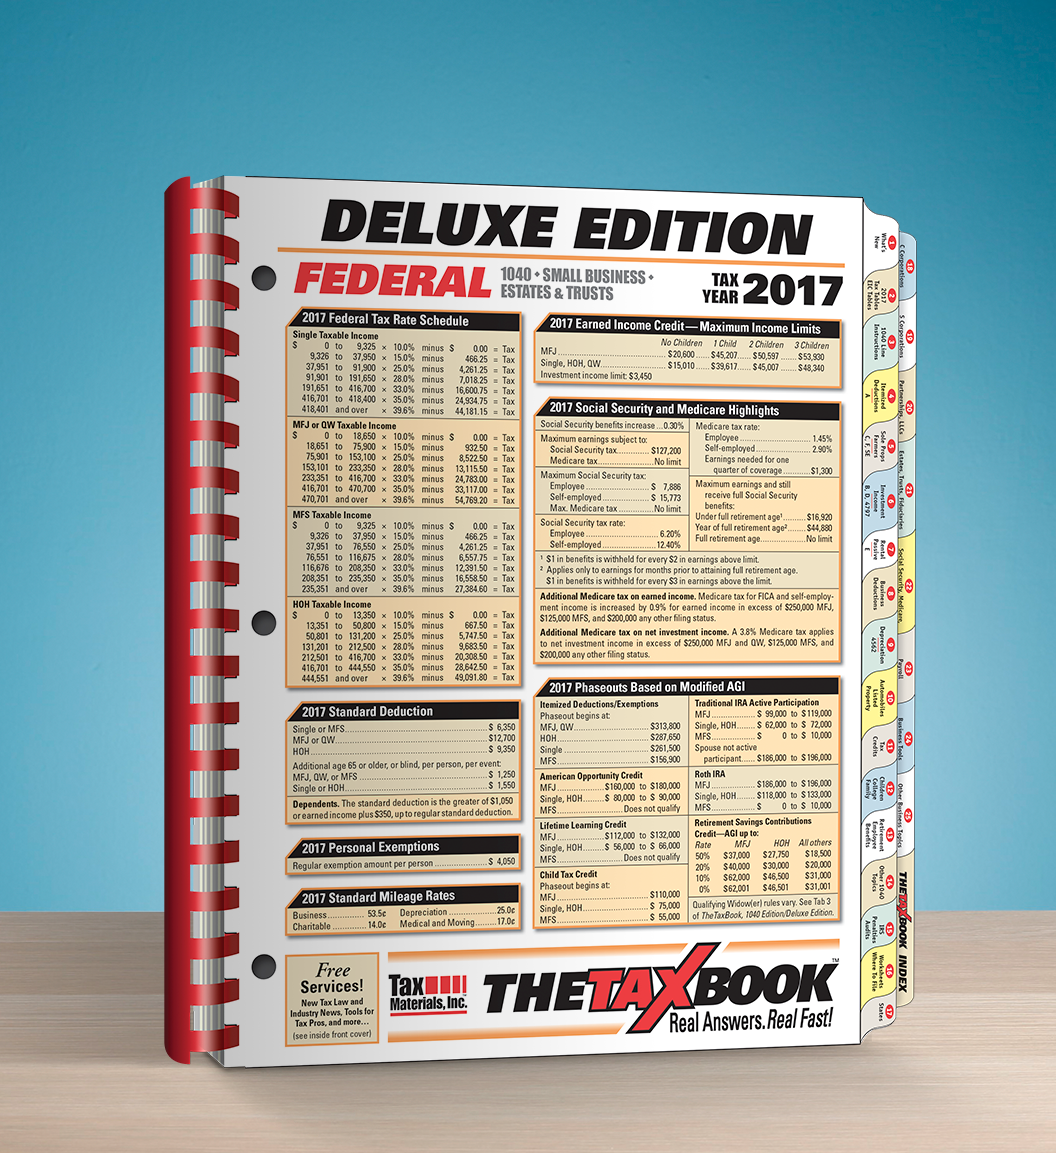 TheTaxBook Deluxe Edition Fast Answer Tax Book (2017) - #3782